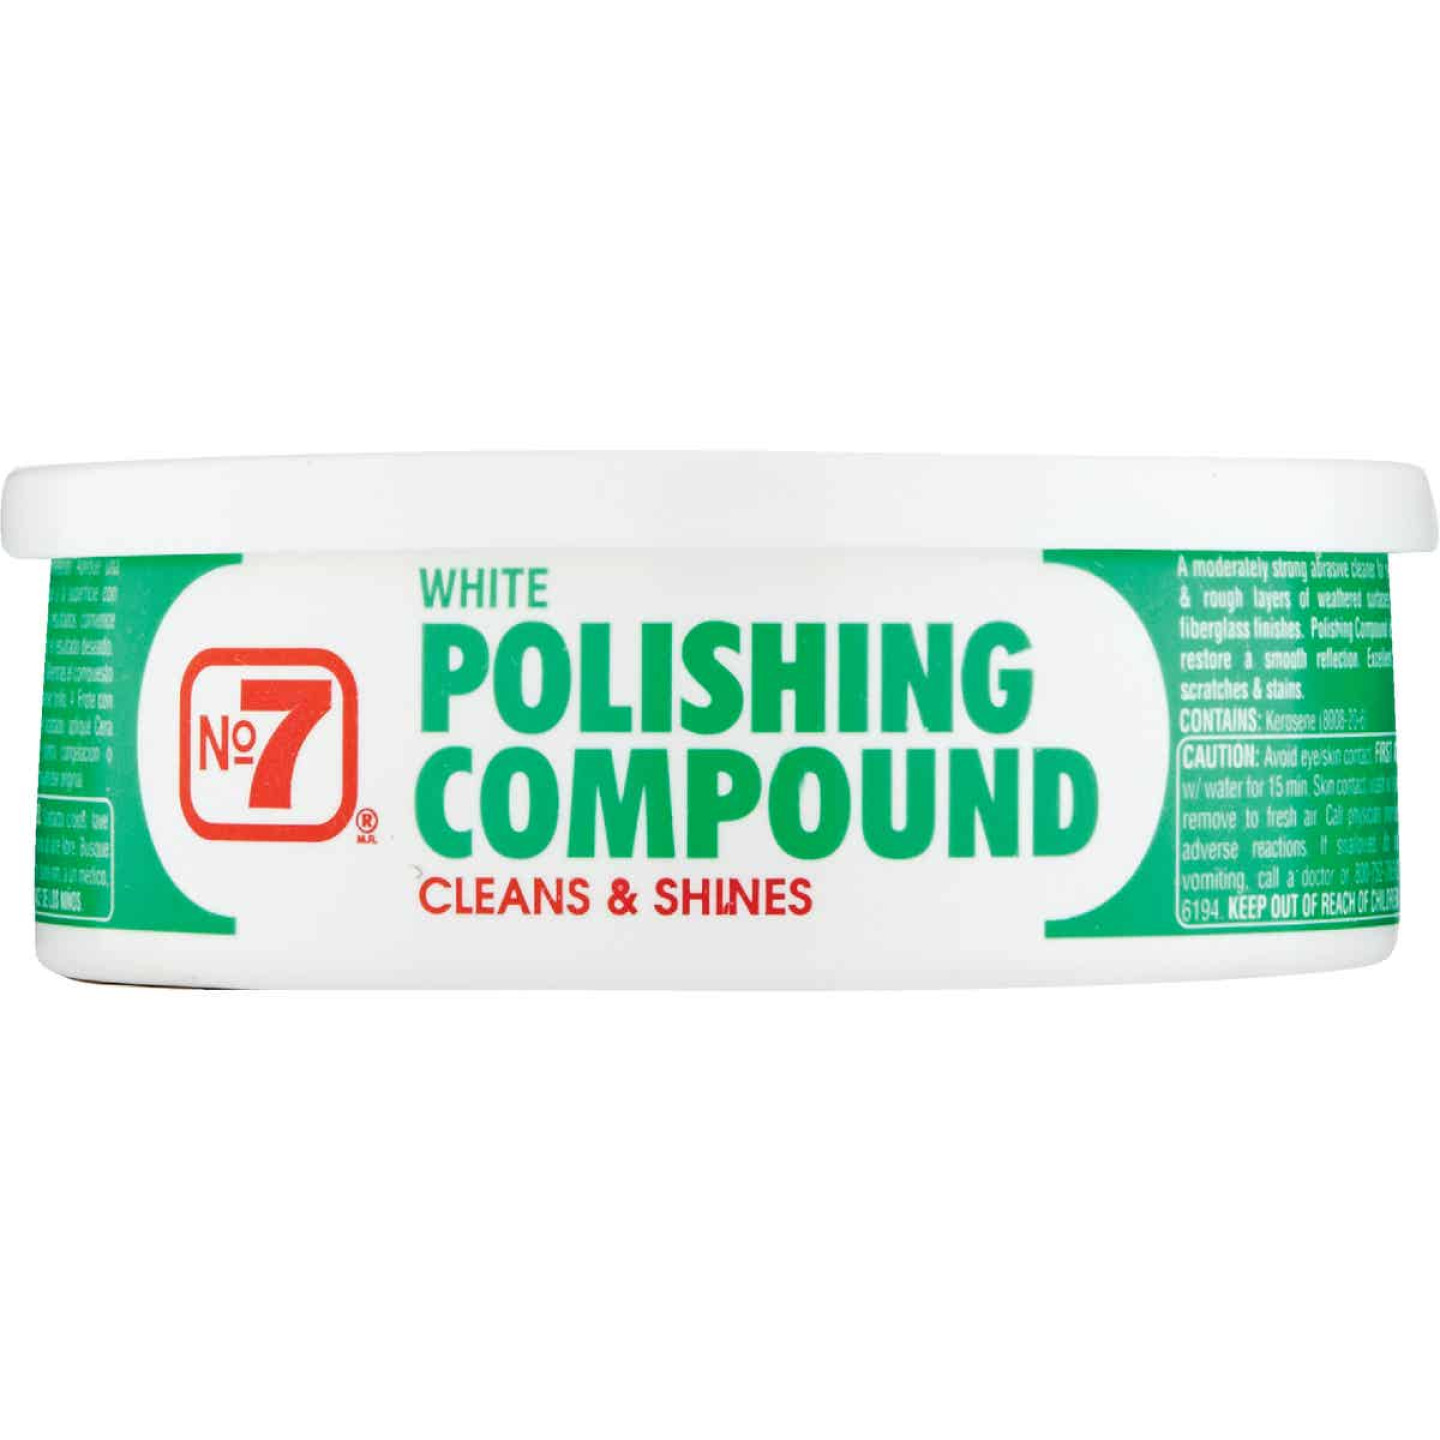 NO. 7, 10 Oz. Paste White Polishing Compound Image 2